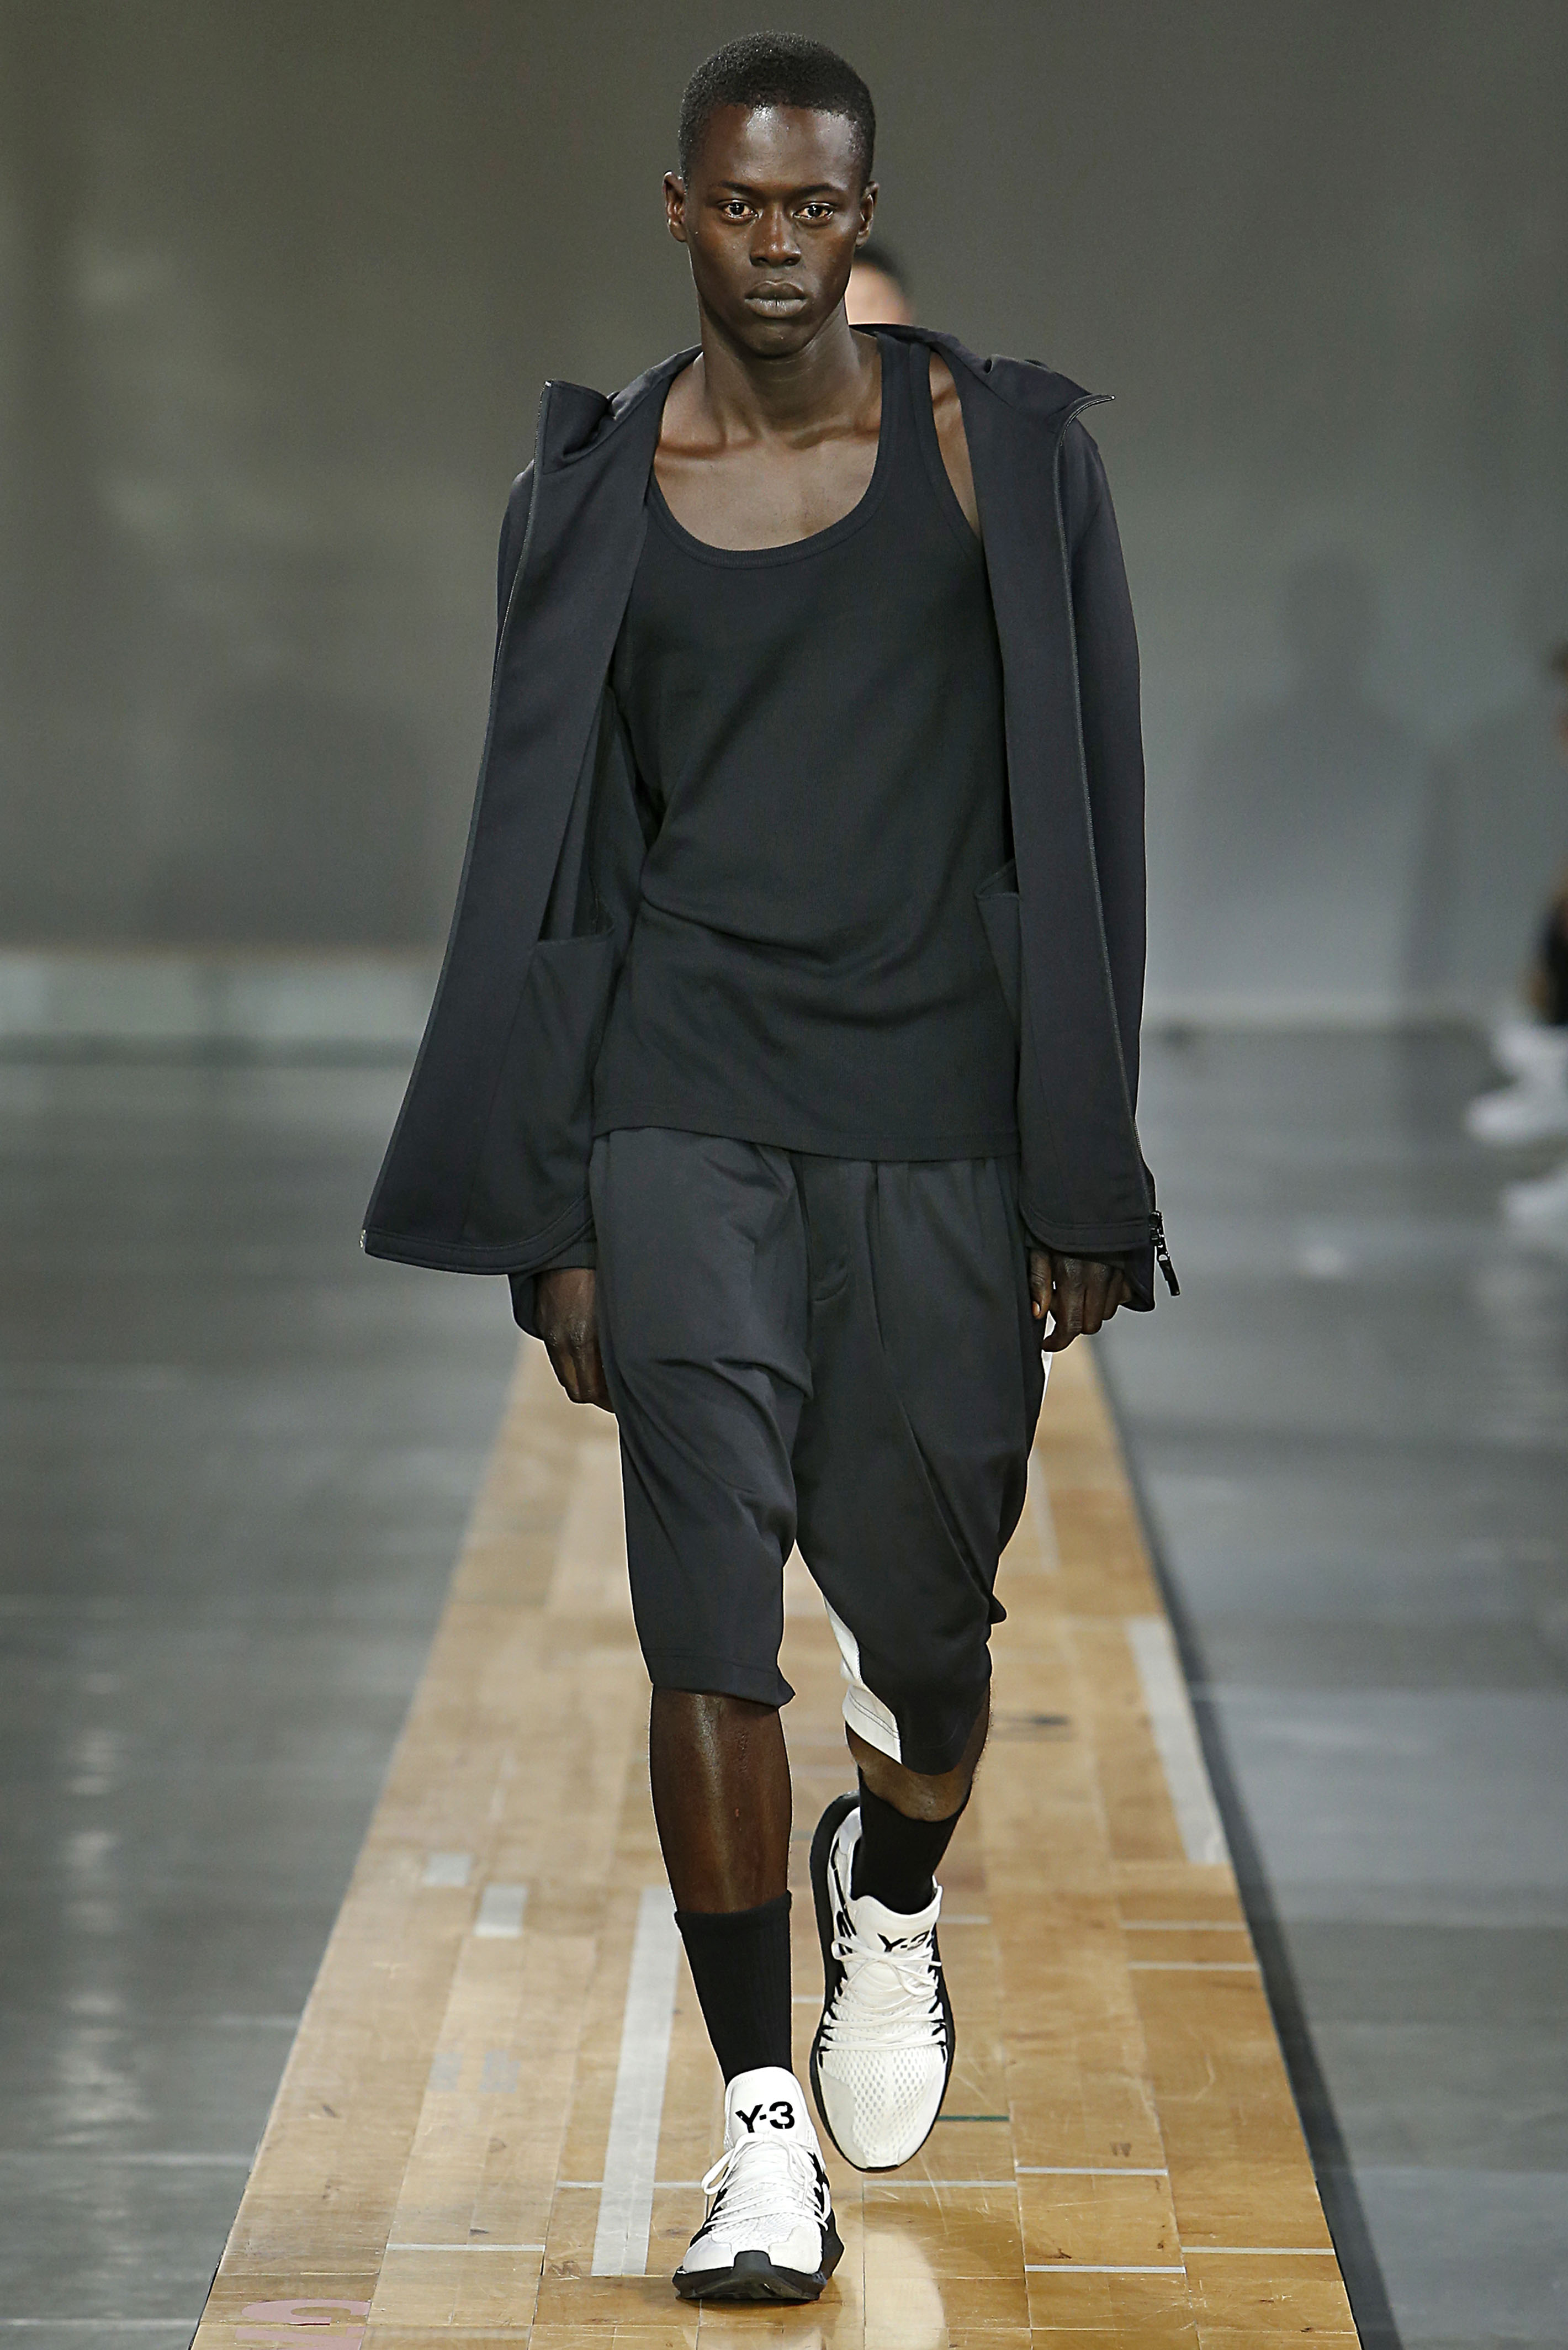 Y3 Paris Menswear Spring Summer 2018 Paris June 2017